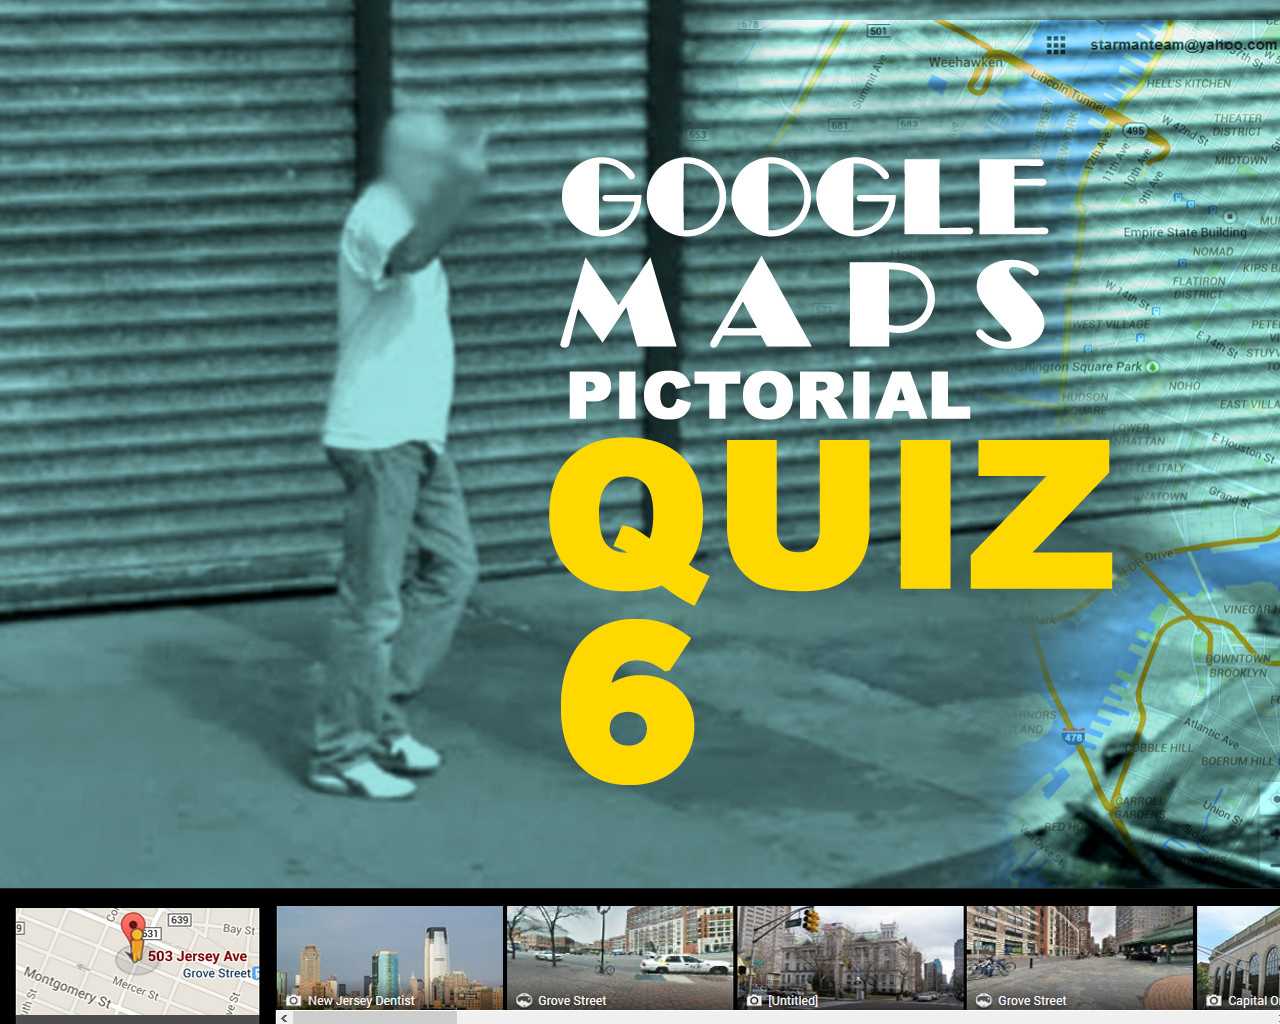 google maps pictorial quiz icon 6